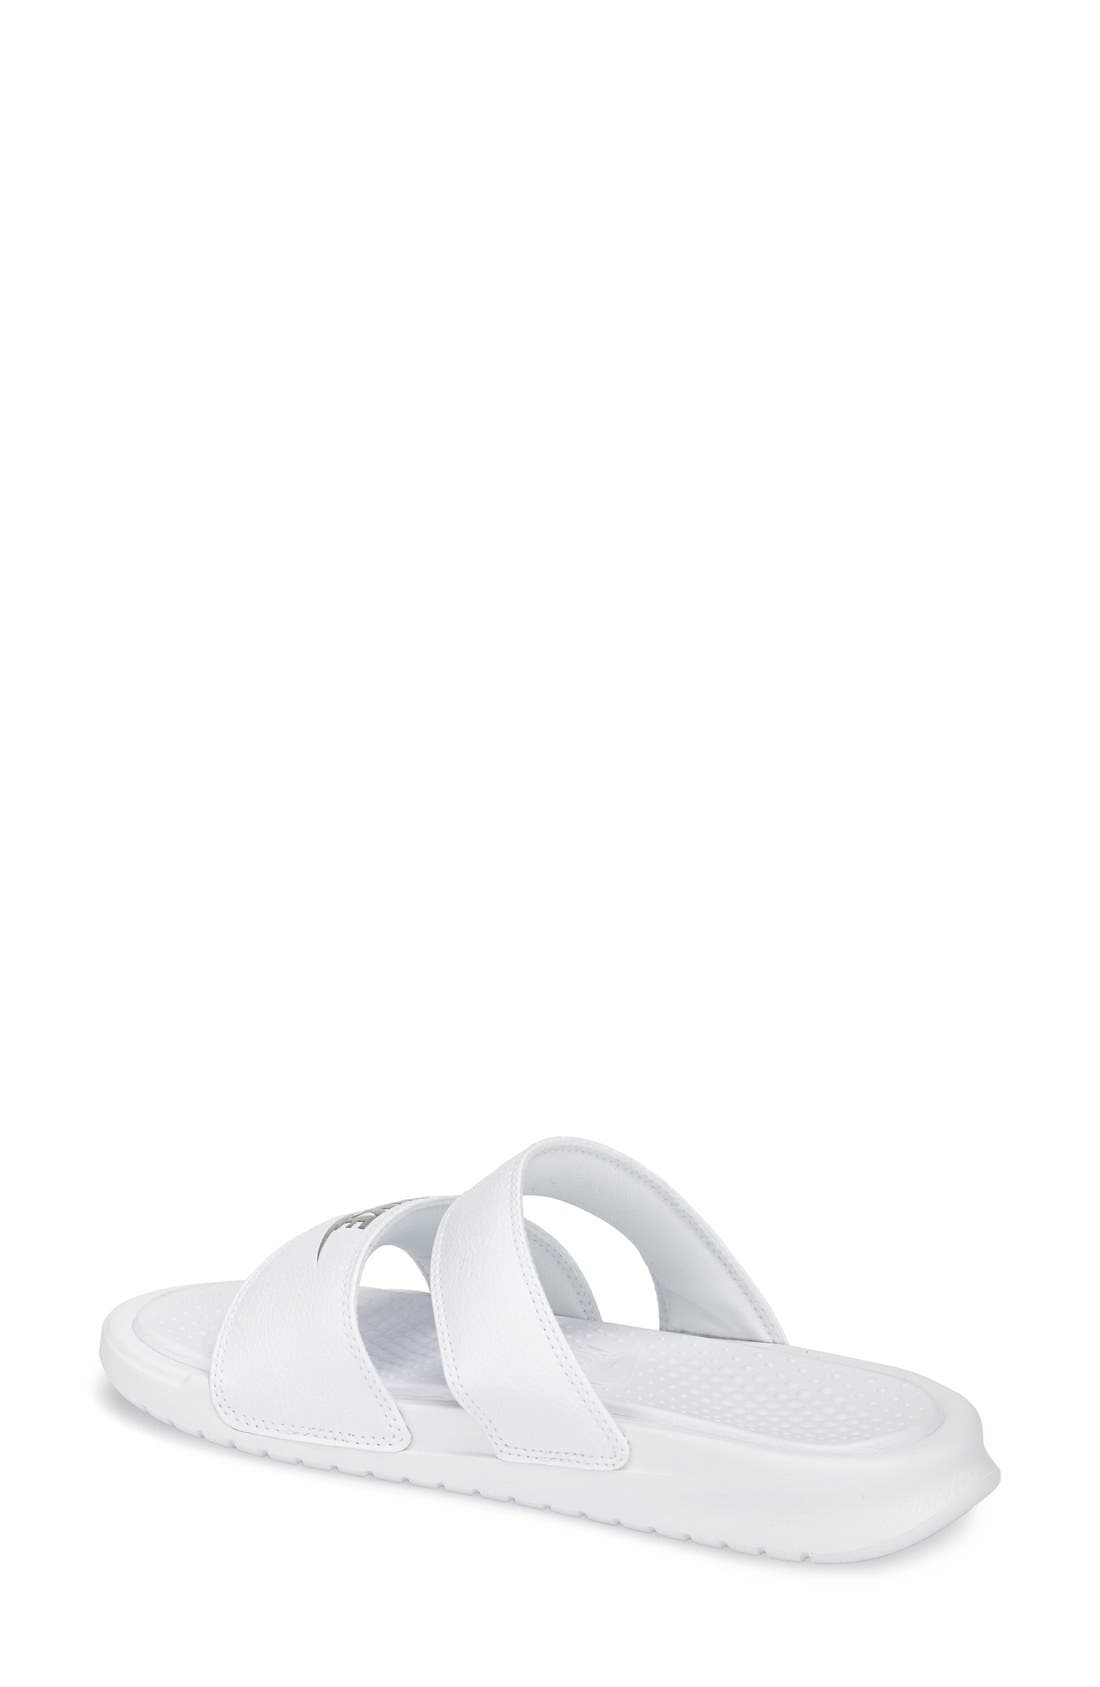 Alternate Image 2  - Nike 'Benassi - Ultra' Slide Sandal (Women)